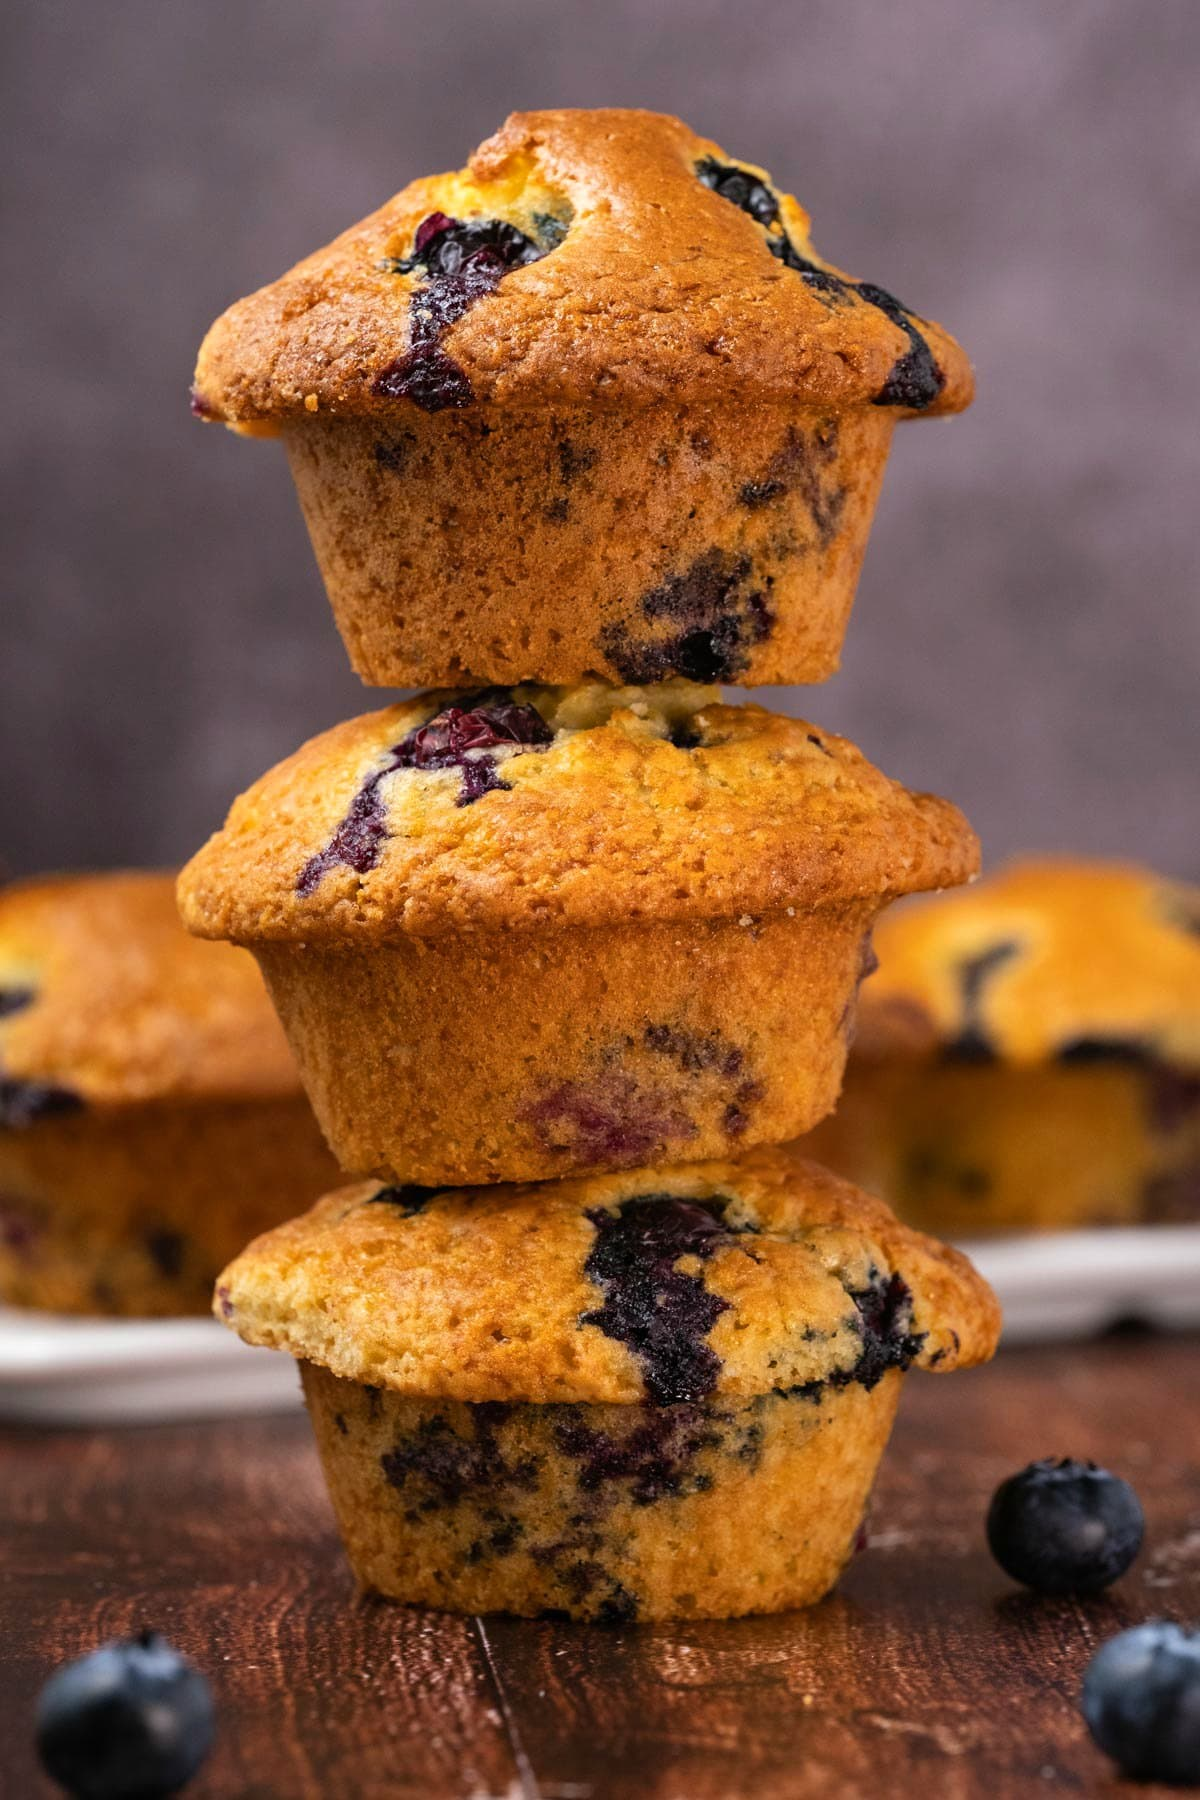 Blueberry muffins in a stack.